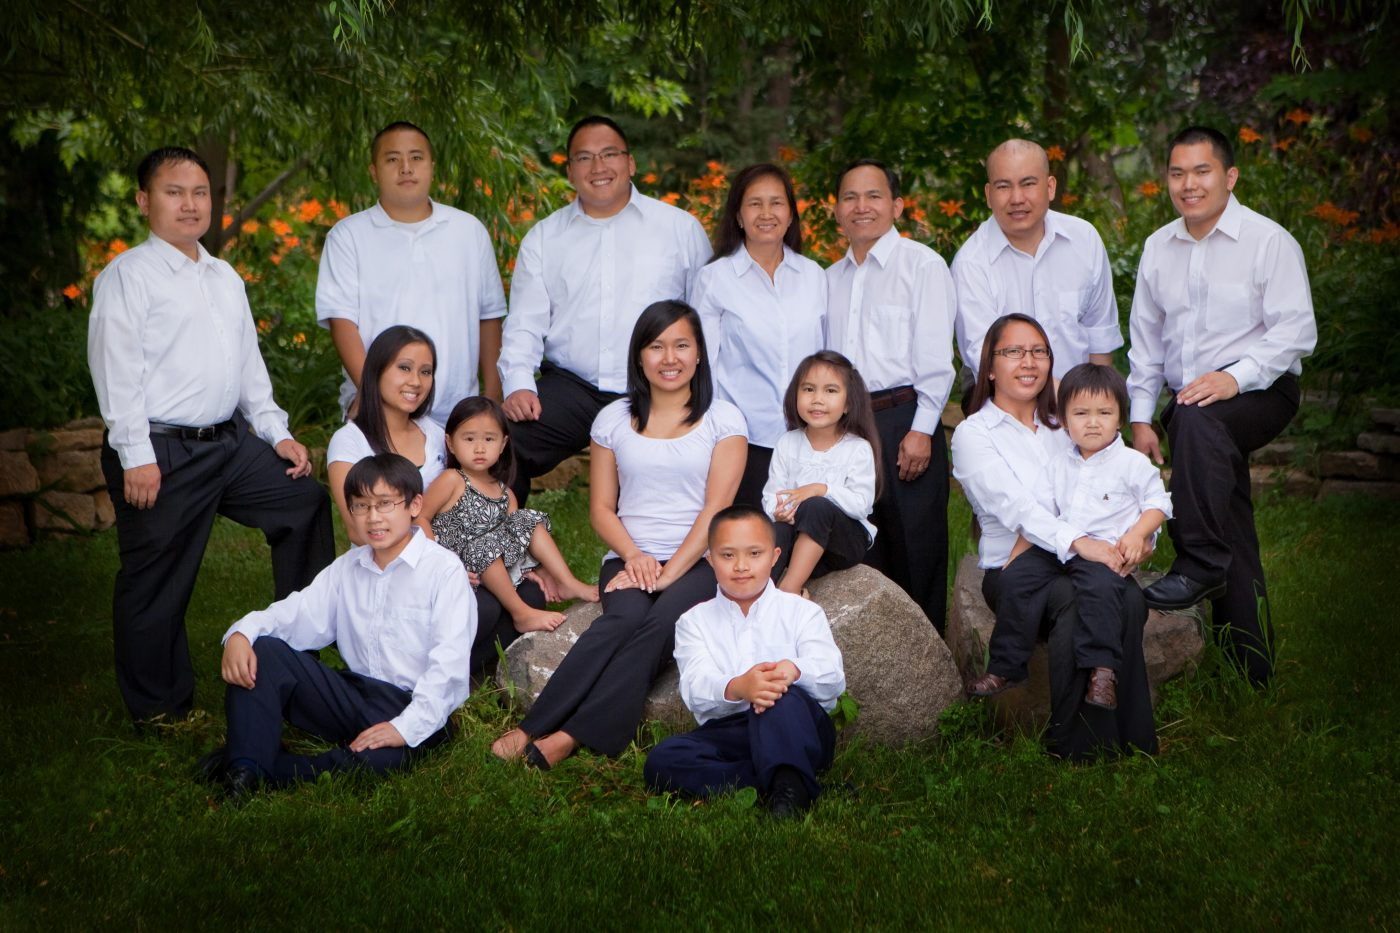 Family of 15 in white shirts and jeans in a garden setting